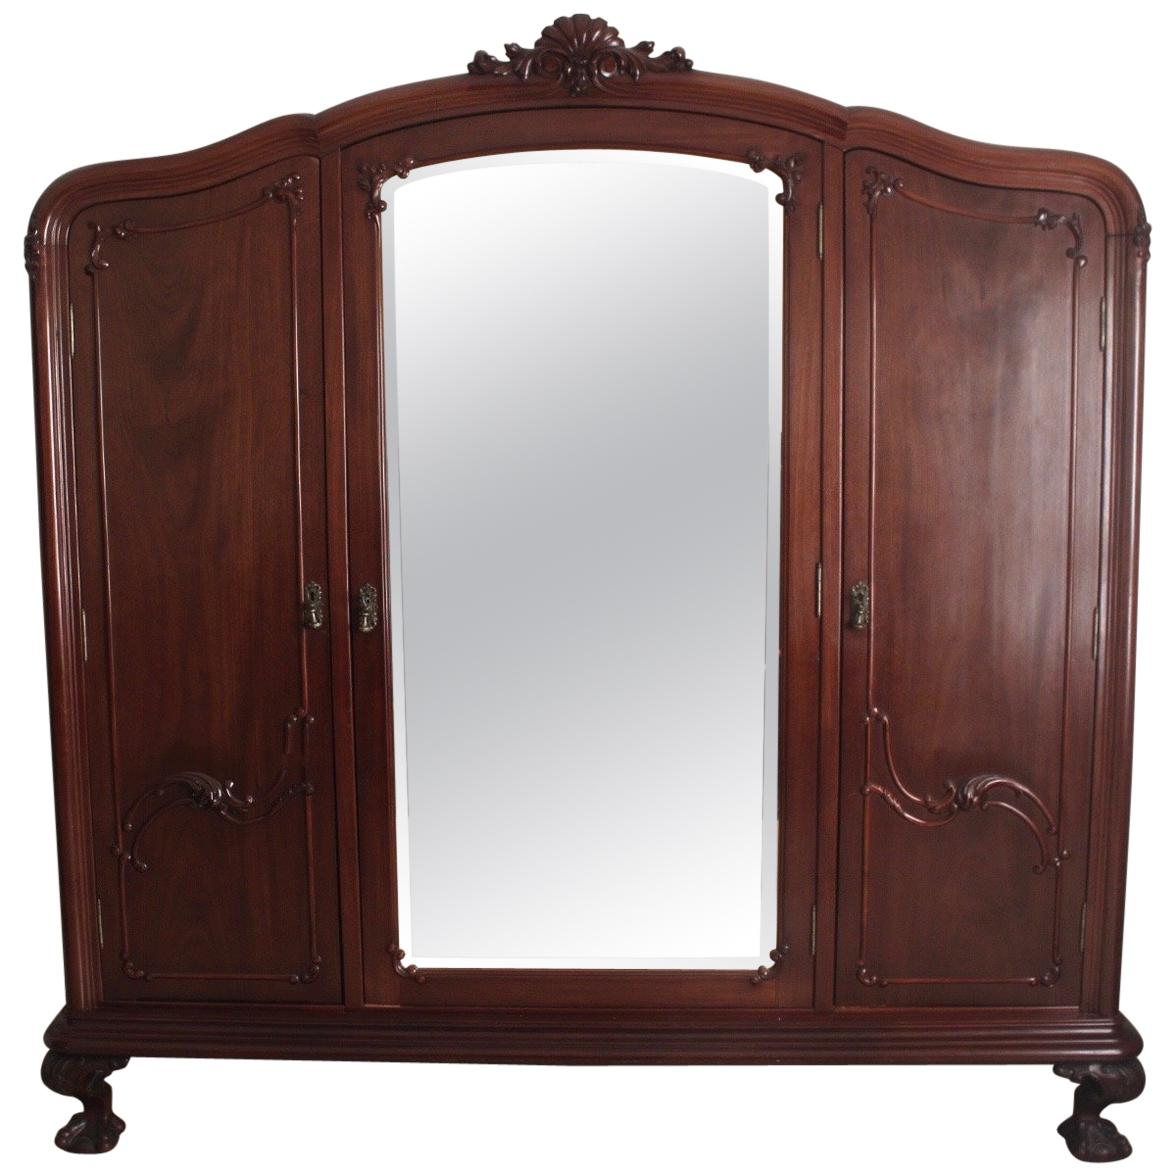 Dimension Armoire Chippendale Ball Claw Mahogany Wood Armoire Or Wardrobe With 3 Vanity Mirrors